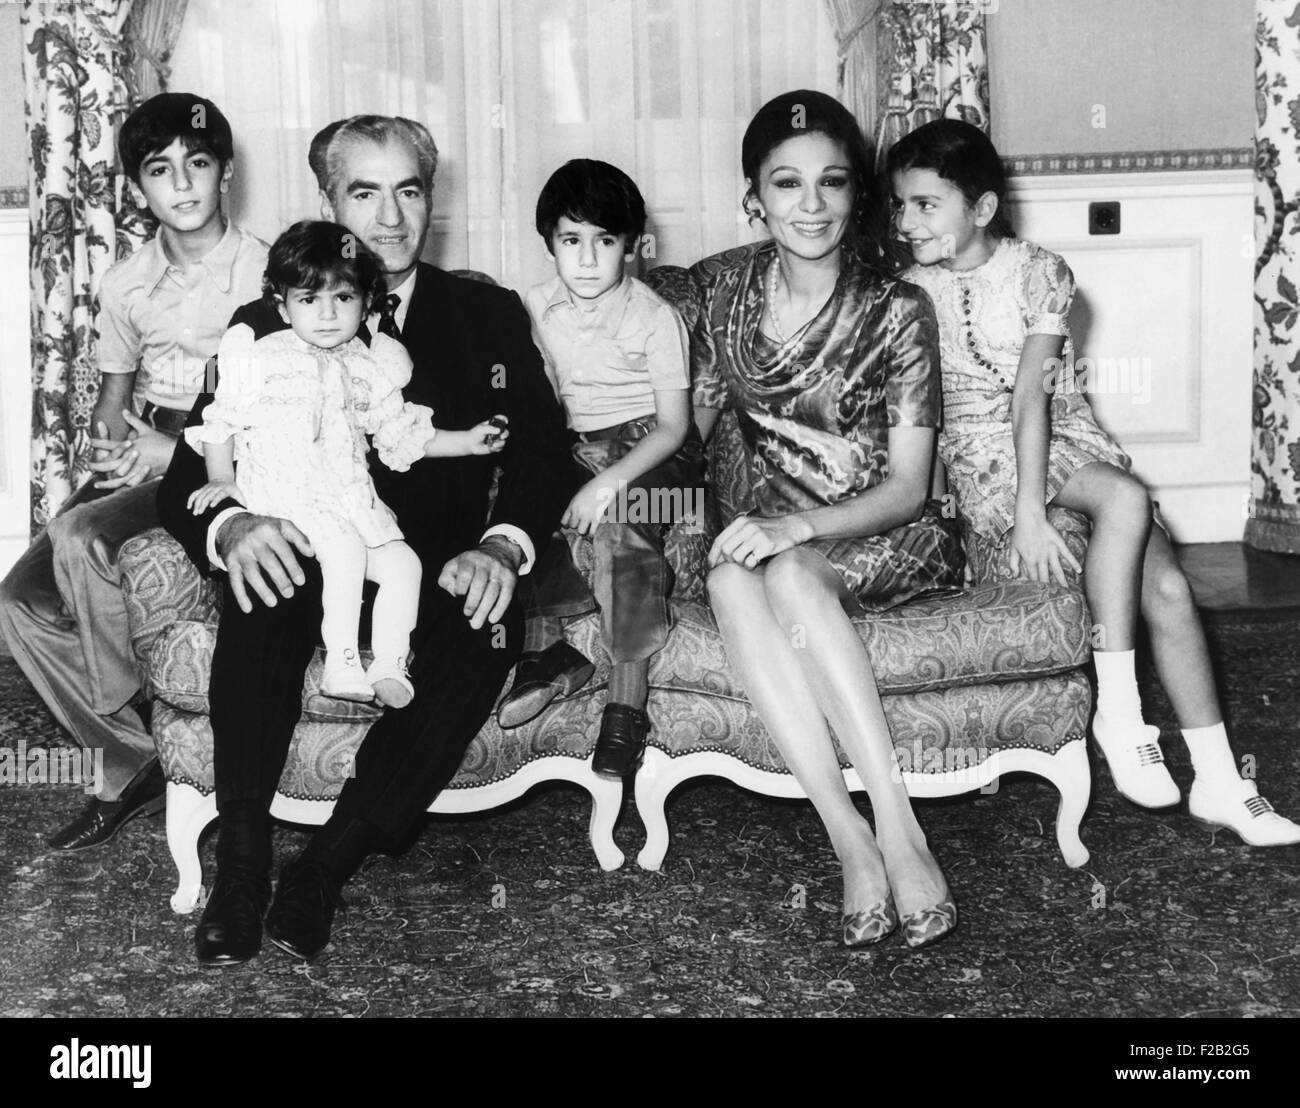 Shah of Iran poses with his family, Sept. 22, 1971. L-R: Crown Prince Reza, 11; Princess Leila, 18 months, who was - Stock Image